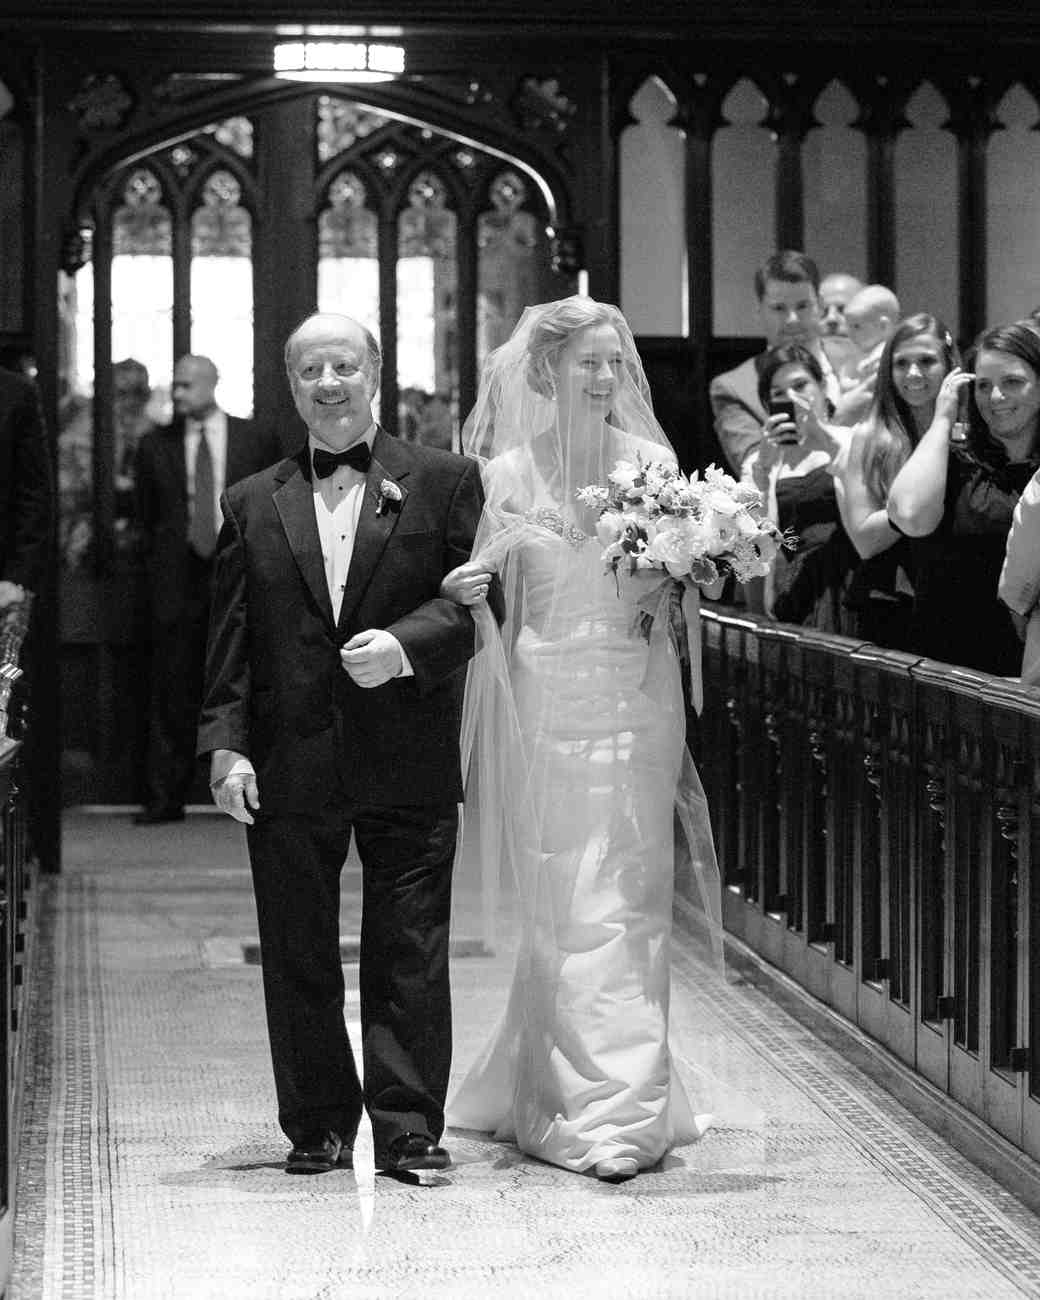 father-bride-bw-blake-chris-nyc-255a4807-mwd110141.jpg